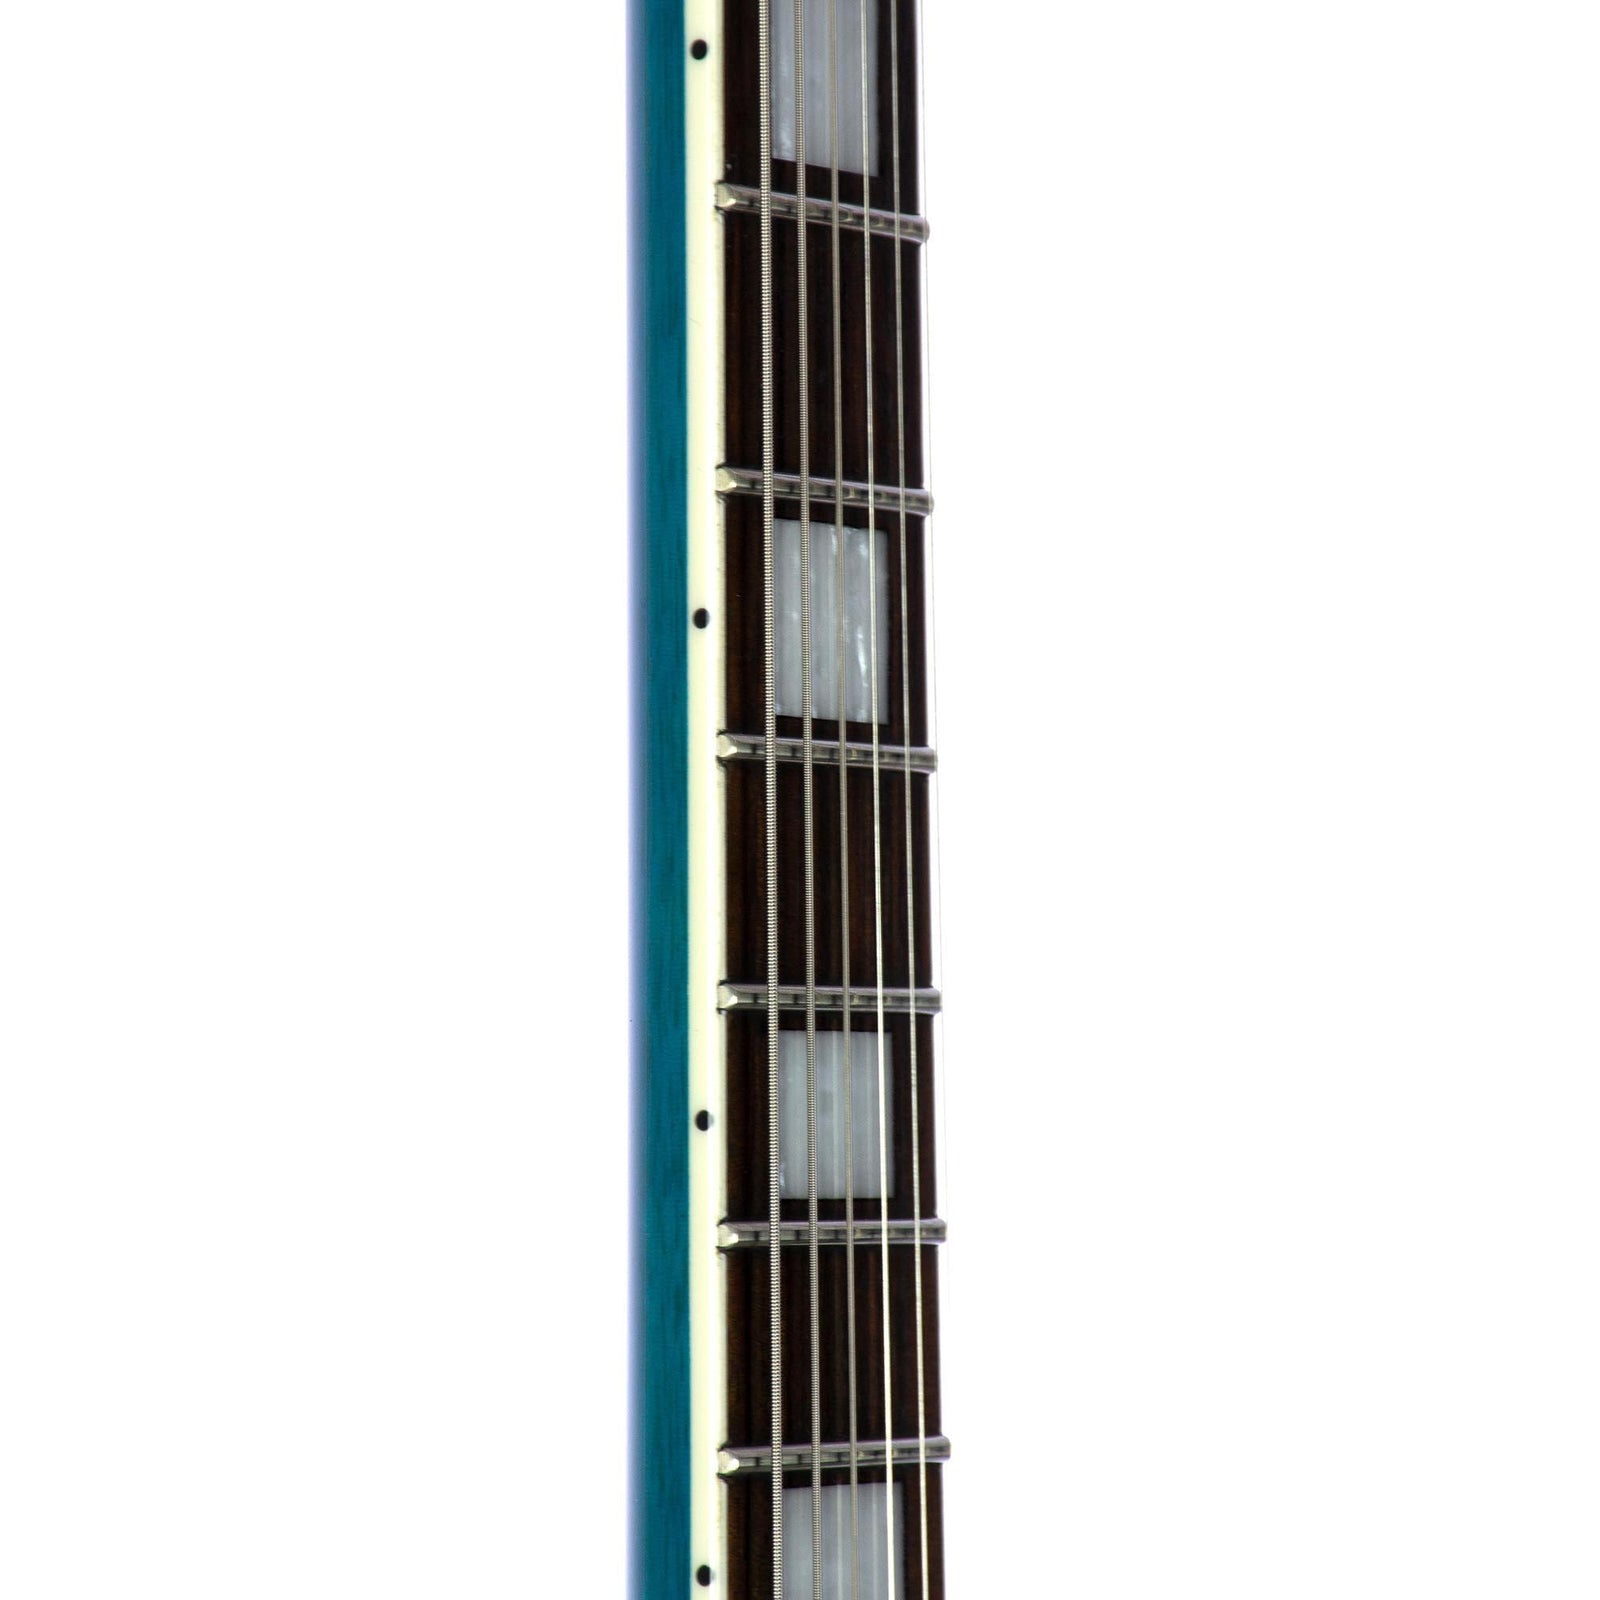 Reverend Manta Ray HB Electric Guitar - Turquoise Flame Maple - Used